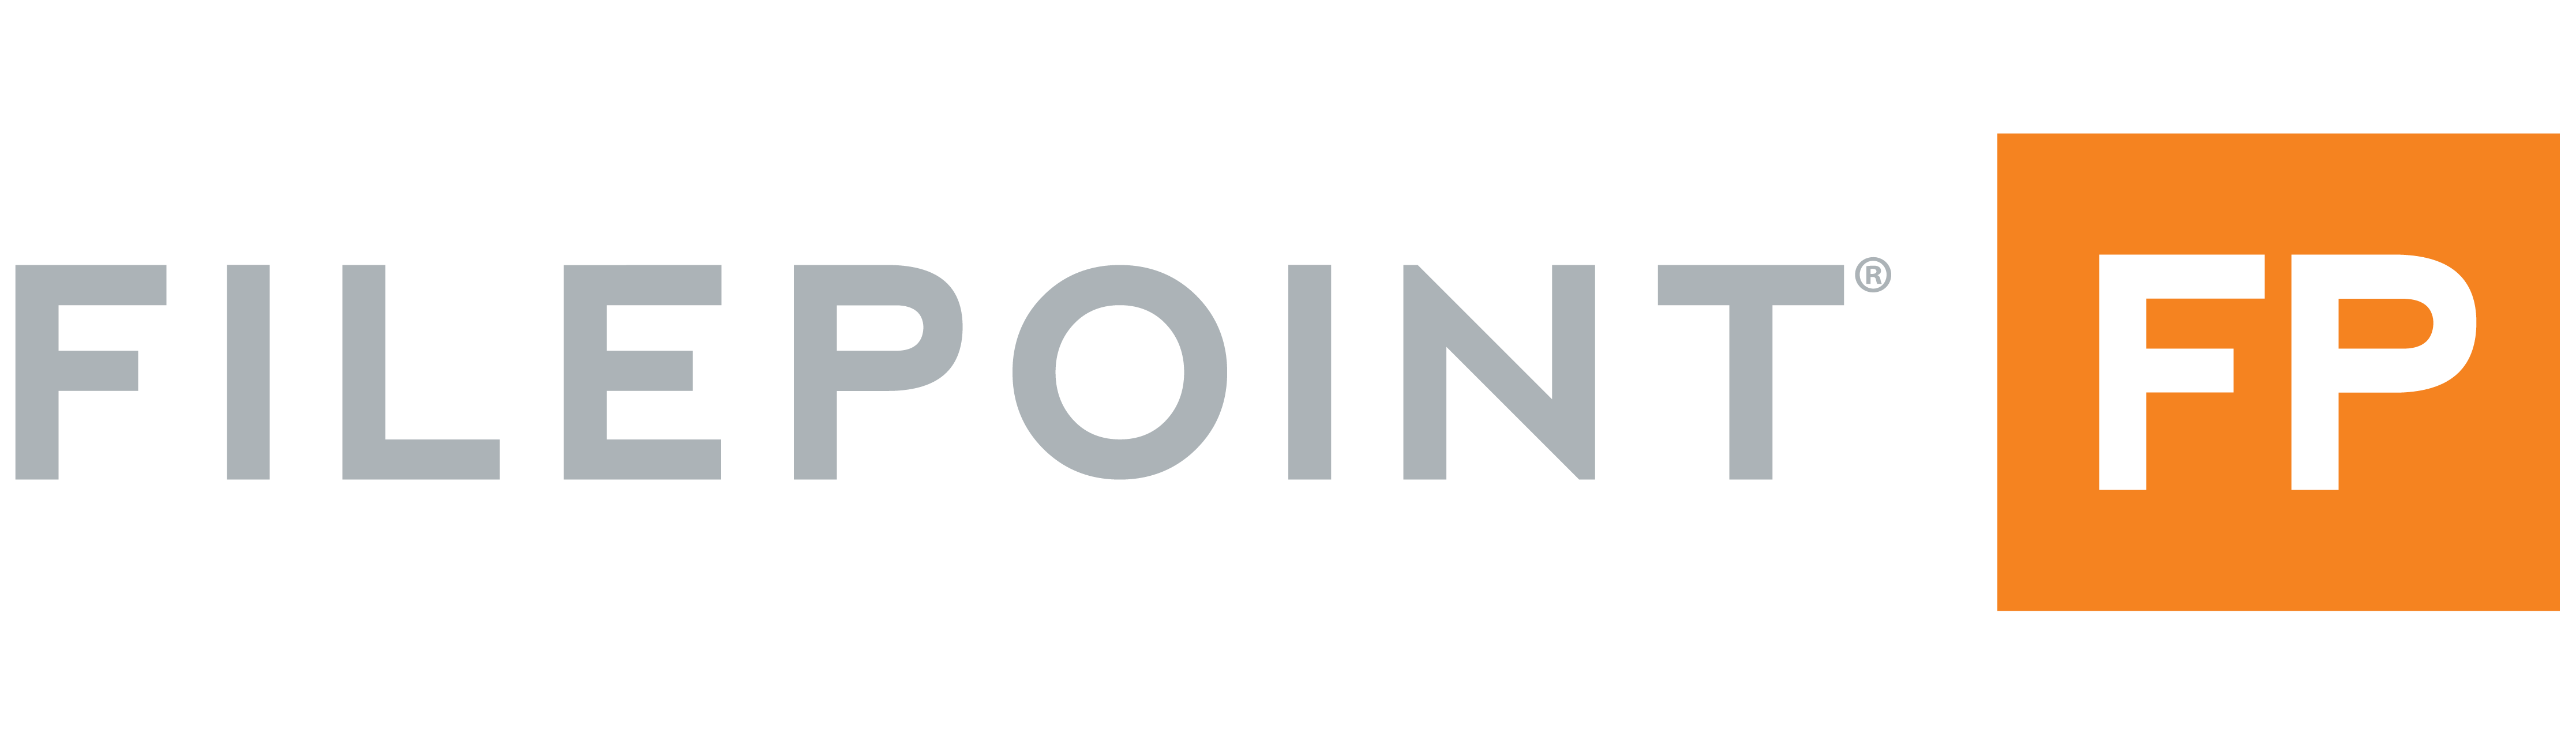 FilePoint<sup>®</sup>